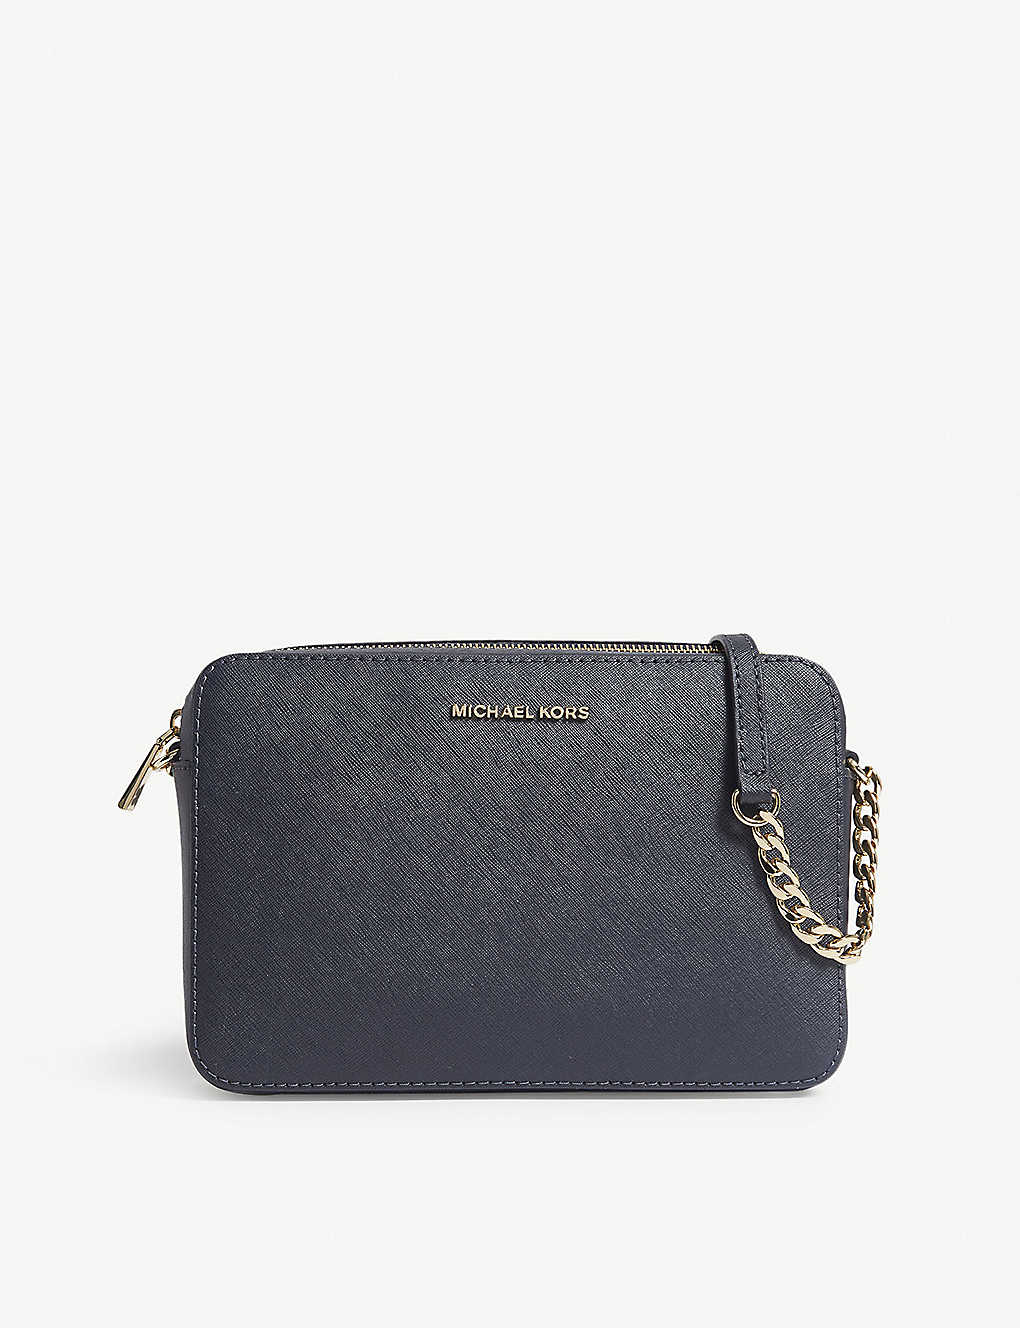 michael kors jet set saffiano crossbody uk zone rh rfidbusinesscards com